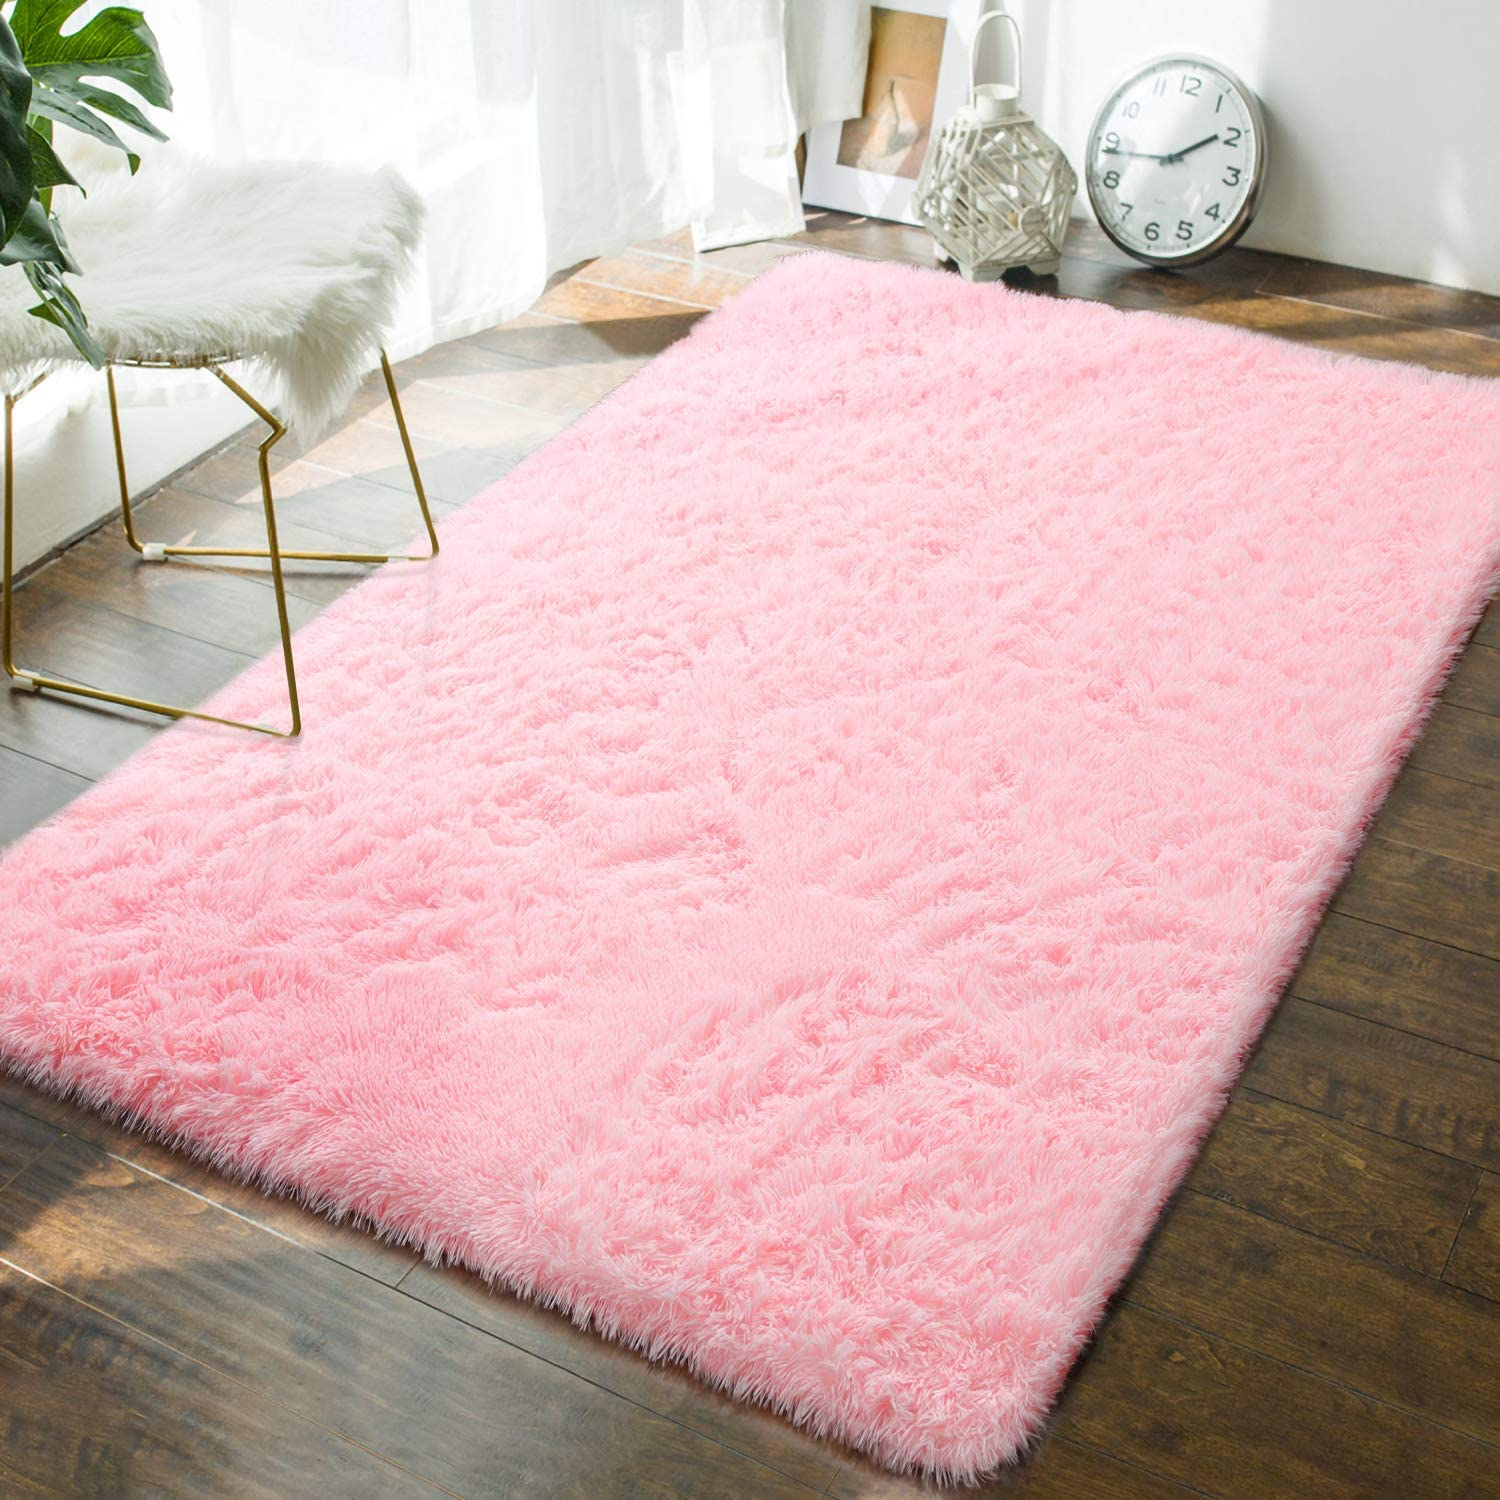 Andecor Soft Fluffy Bedroom Rugs - 4 x 6 Feet Indoor Shaggy Plush Area Rug for Boys Girls Kids Baby College Dorm Living Room Home Decor Floor Carpet, Baby Pink